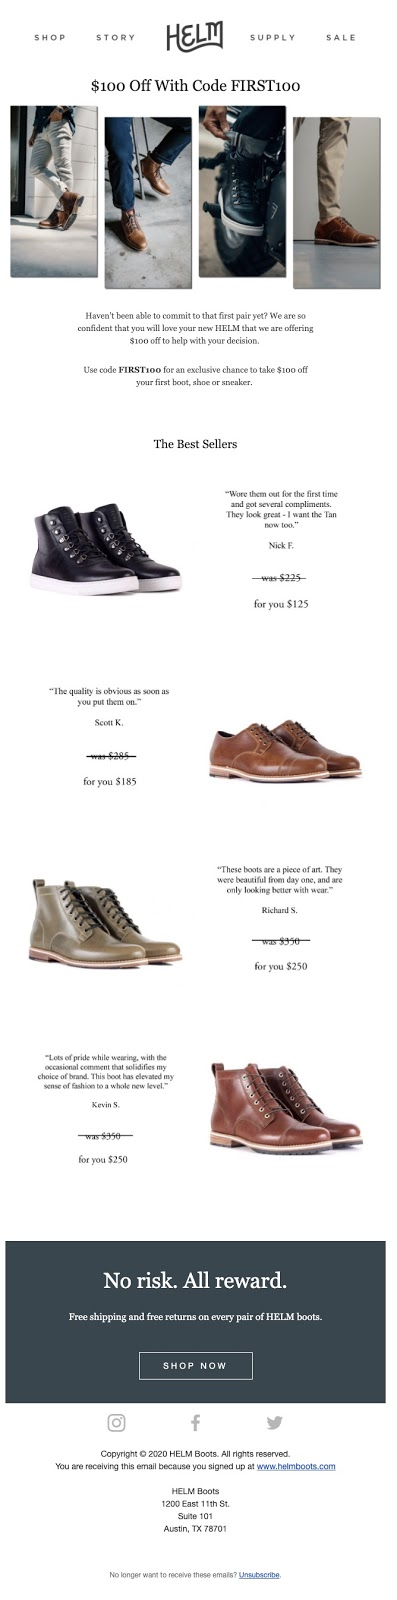 HELM Boots Segmented Email Marketing Example Shopify